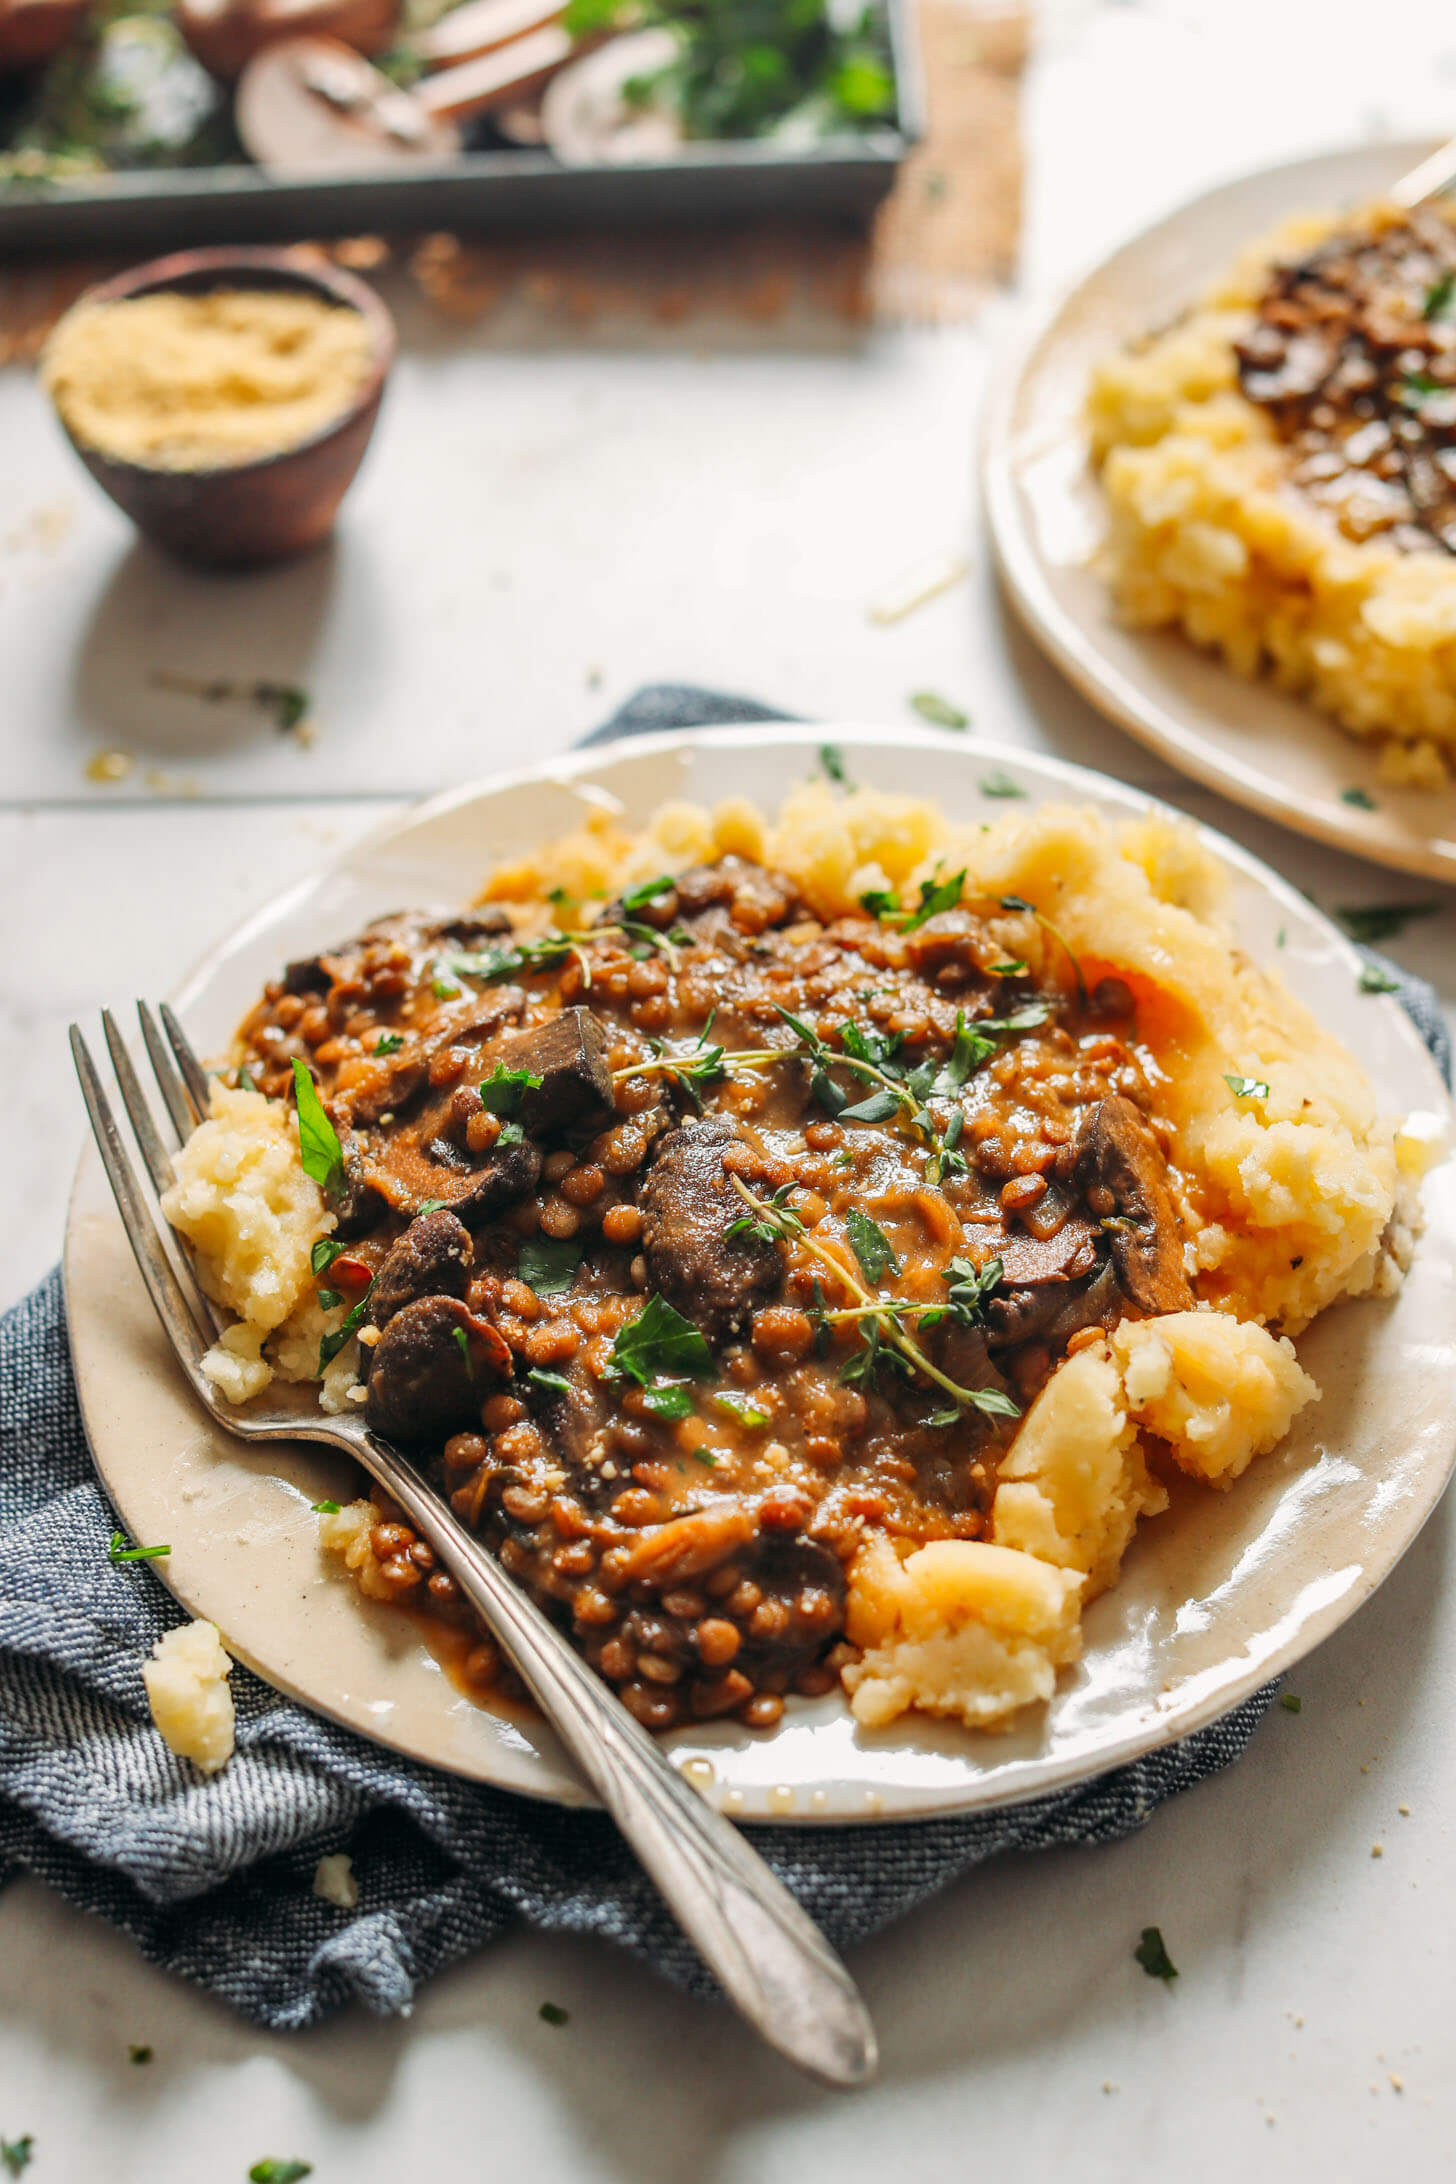 Lentil Mushroom Stew with Mashed Potatoes